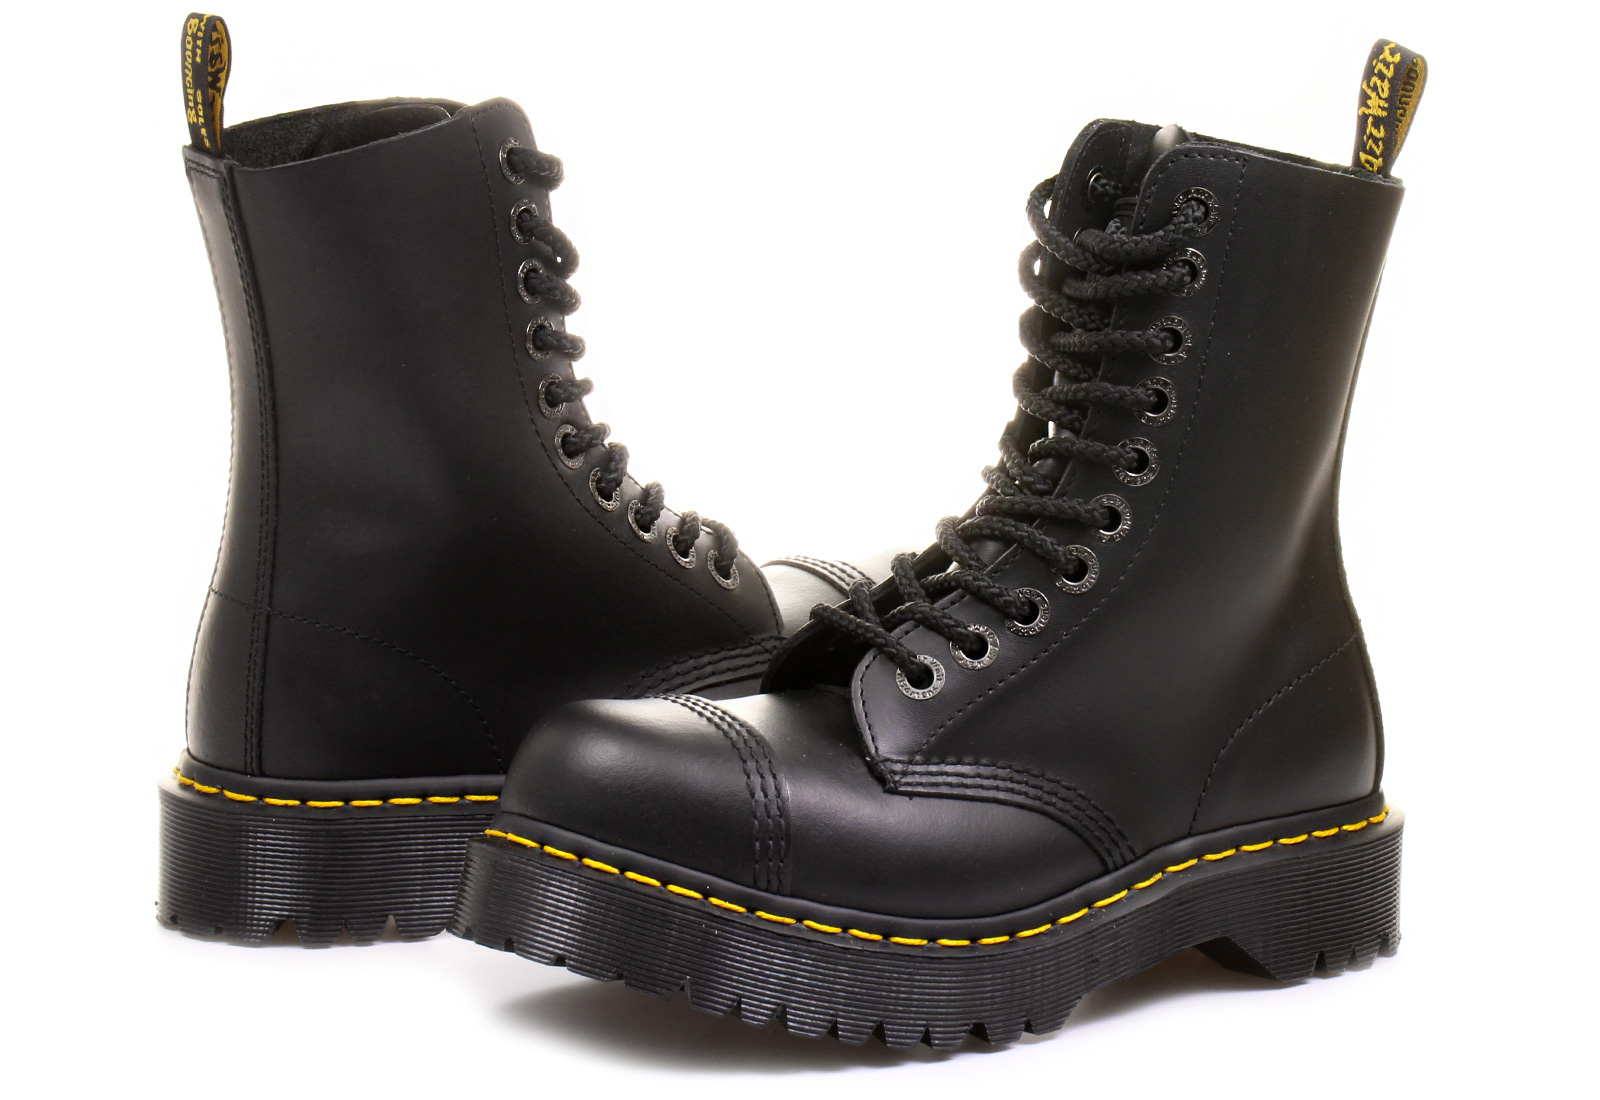 Dr Martens Boots - 8761 B-Fh - 10966001 - Online shop for sneakers, shoes and boots